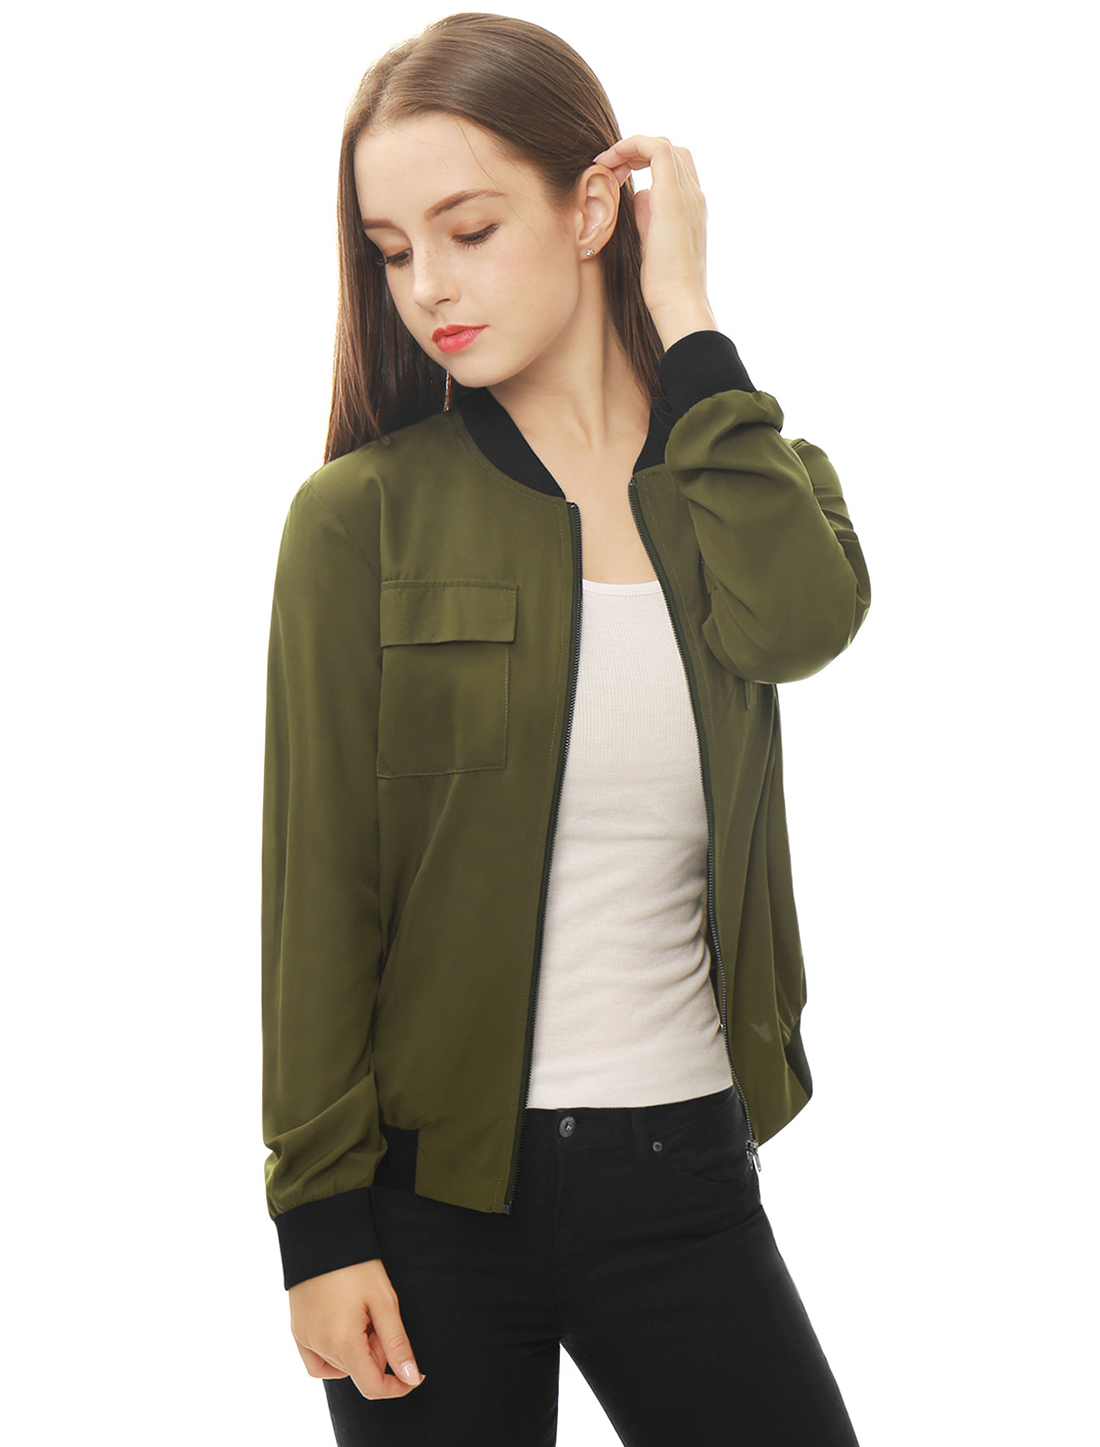 Women Multi-Pocket Zip Fastening Front Bomber Jacket Green M